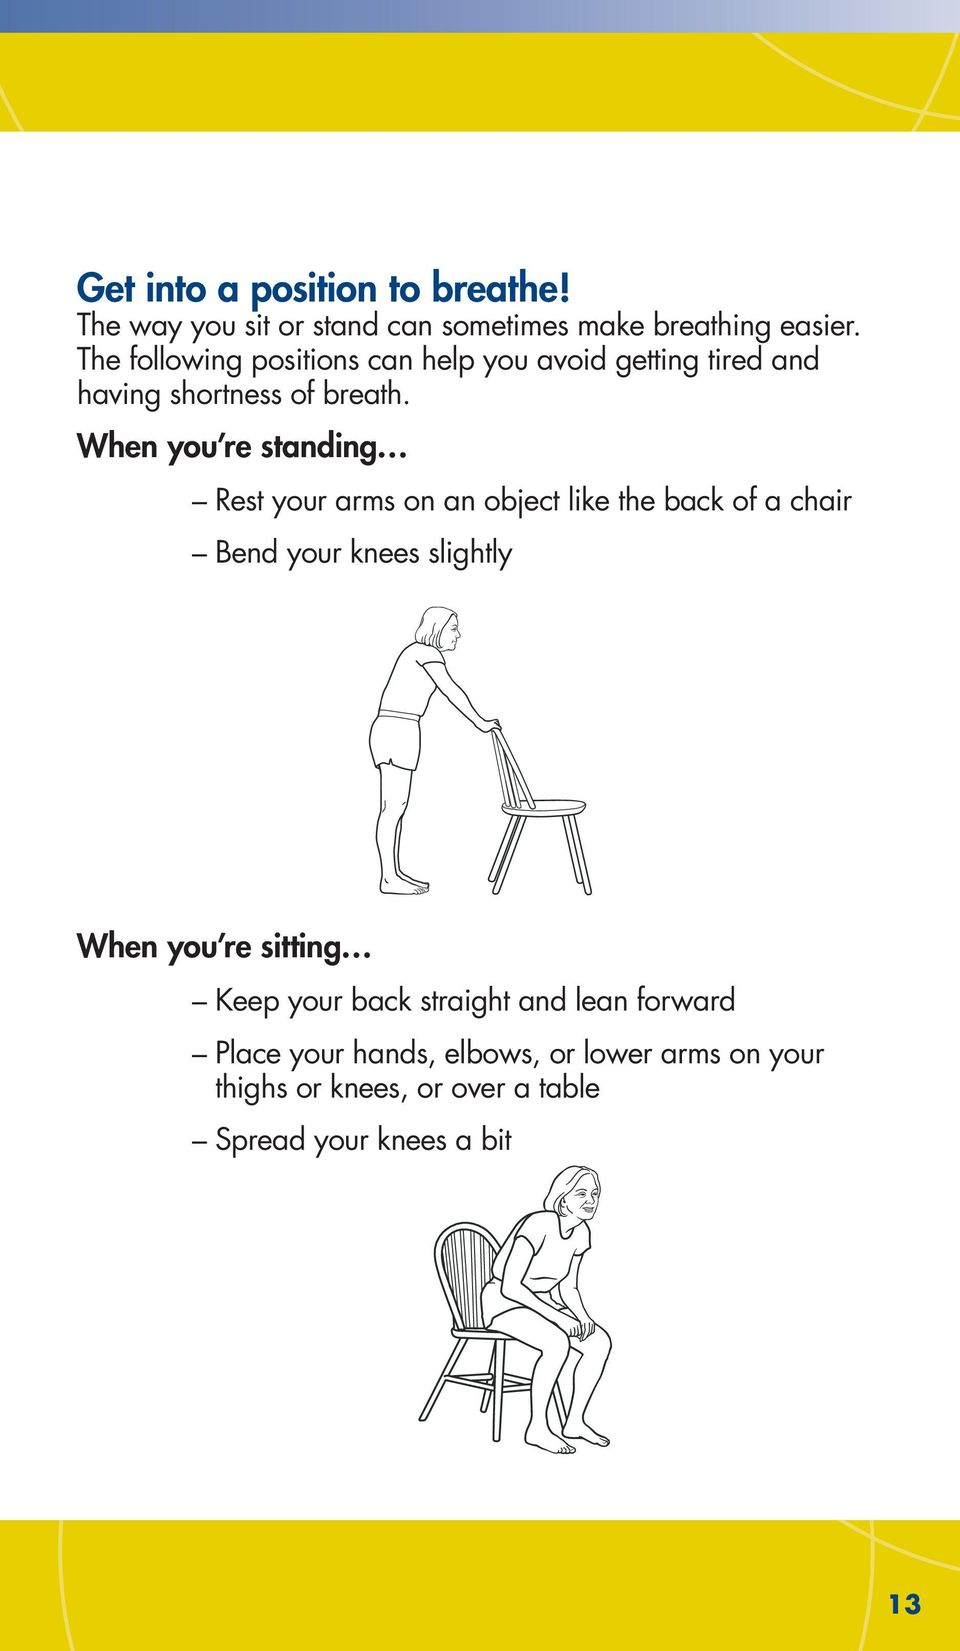 When you re standing Rest your arms on an object like the back of a chair Bend your knees slightly When you re